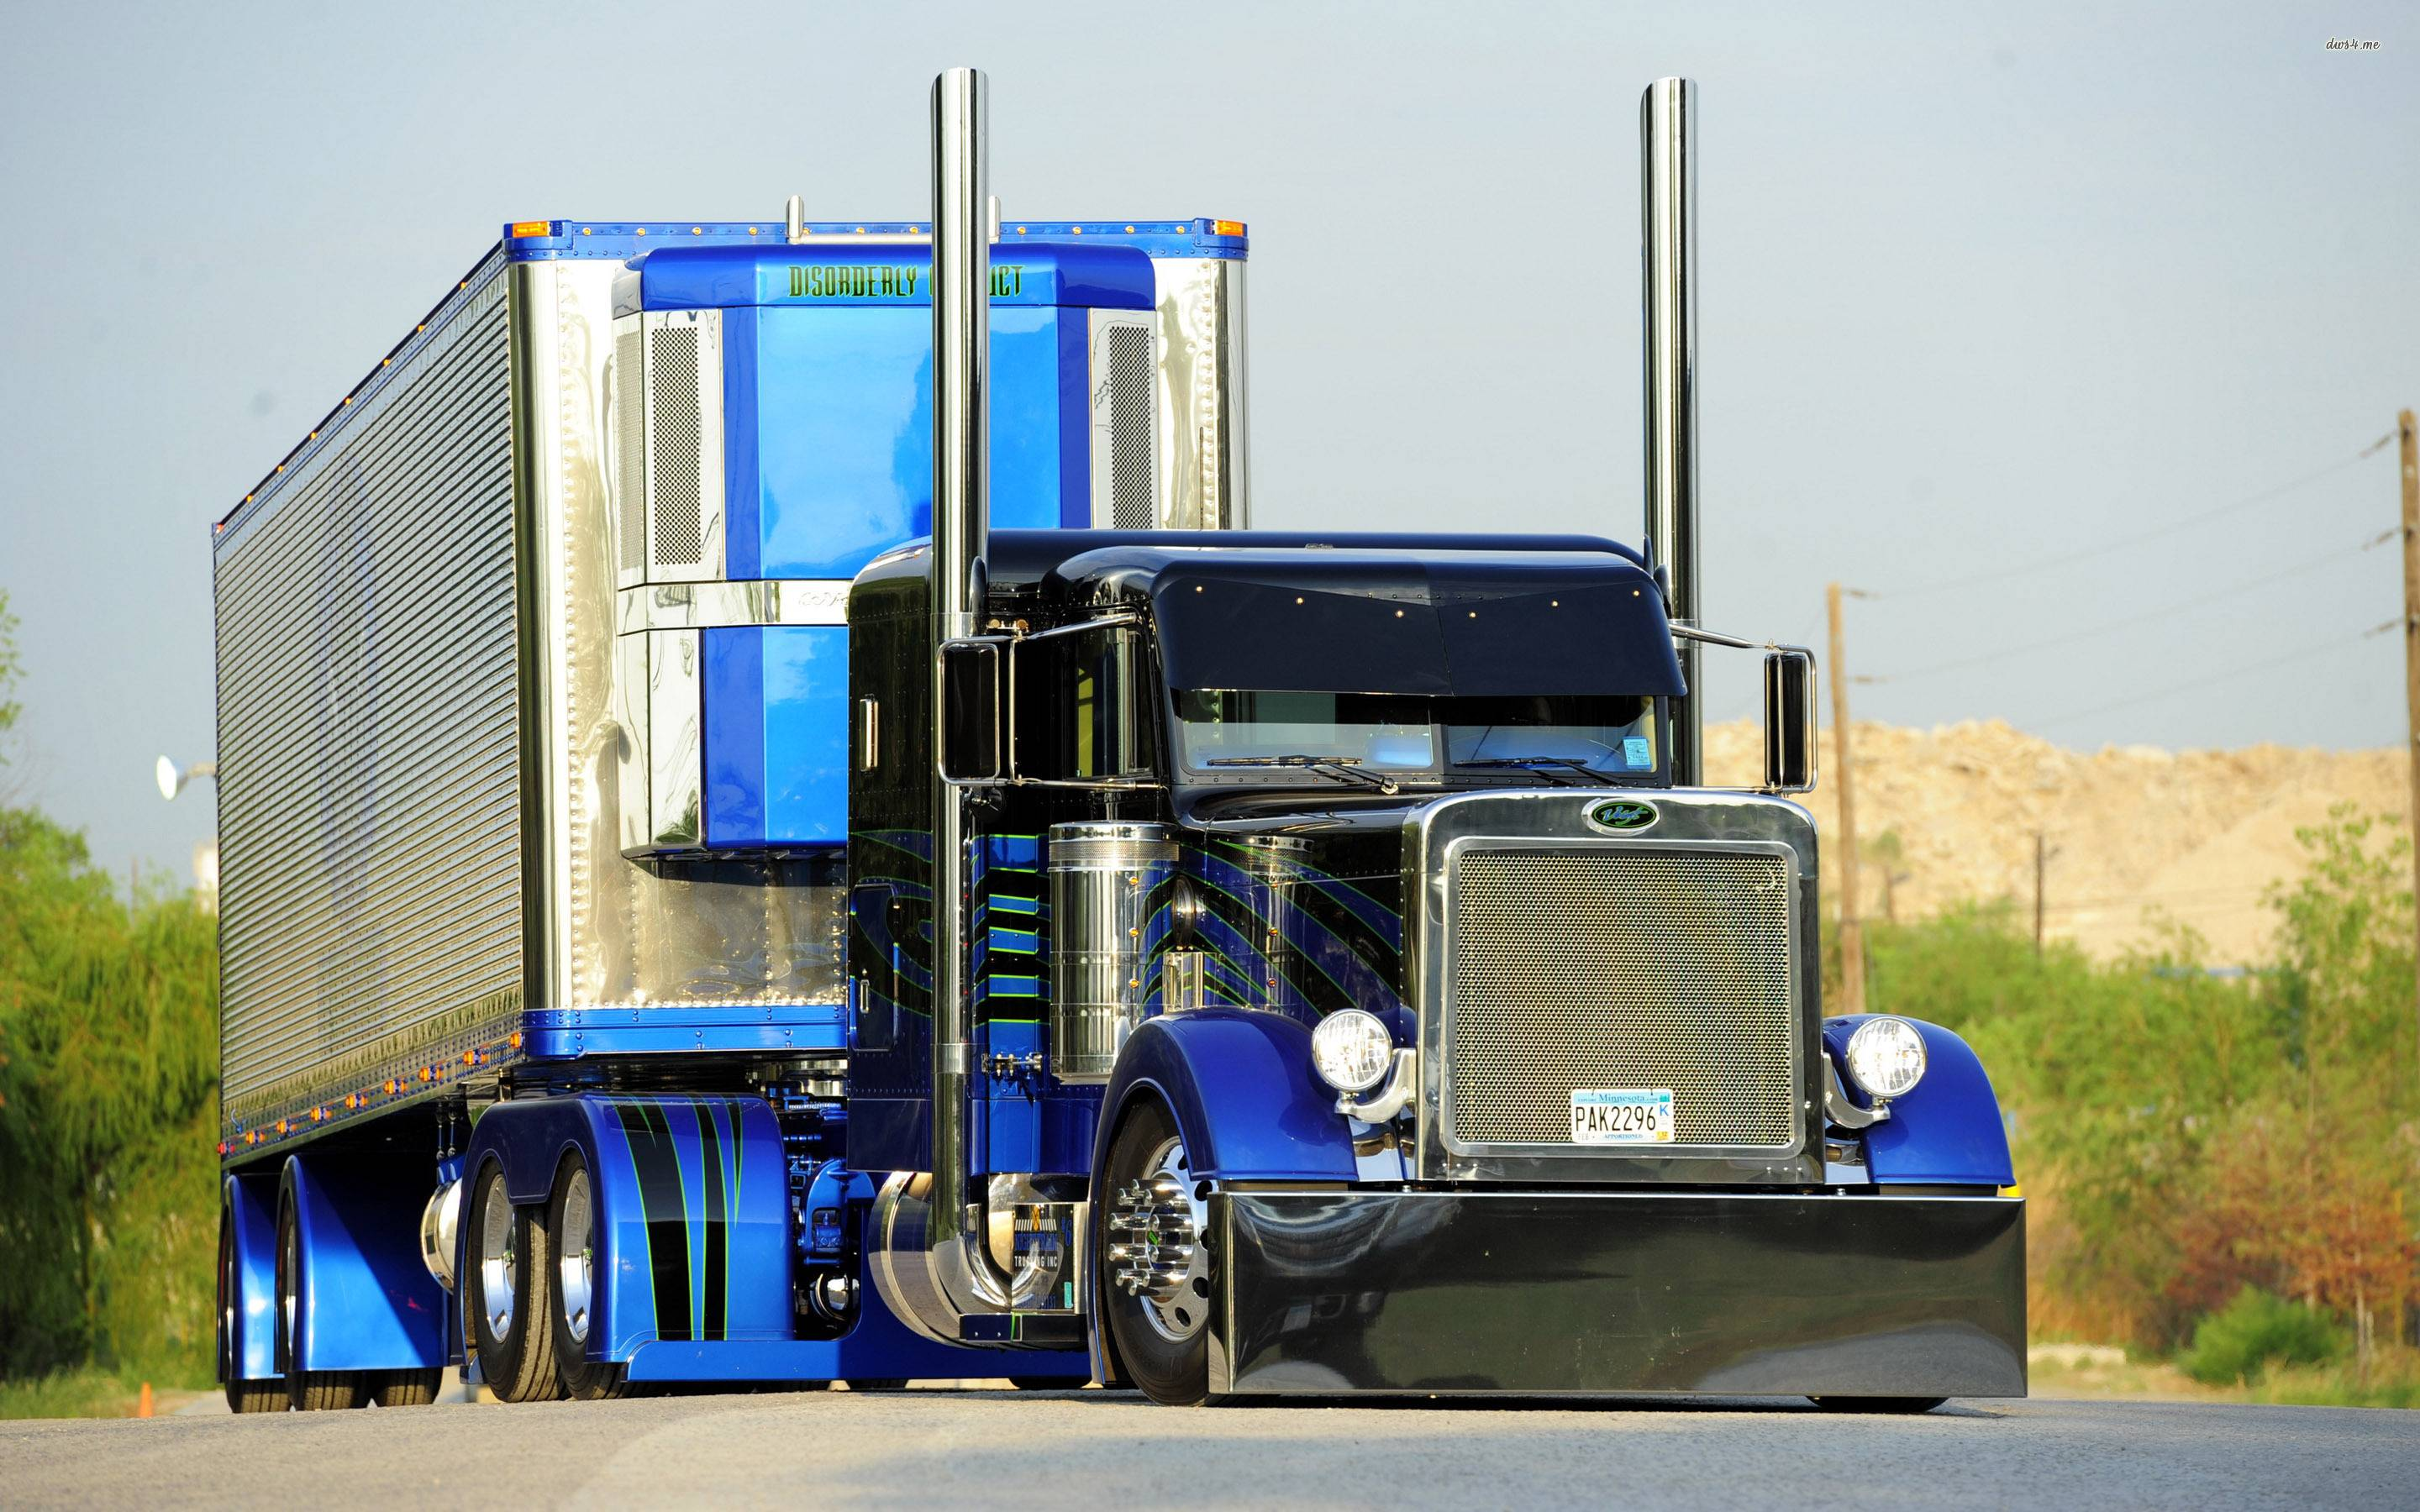 [40+] Free Peterbilt Wallpapers on WallpaperSafari